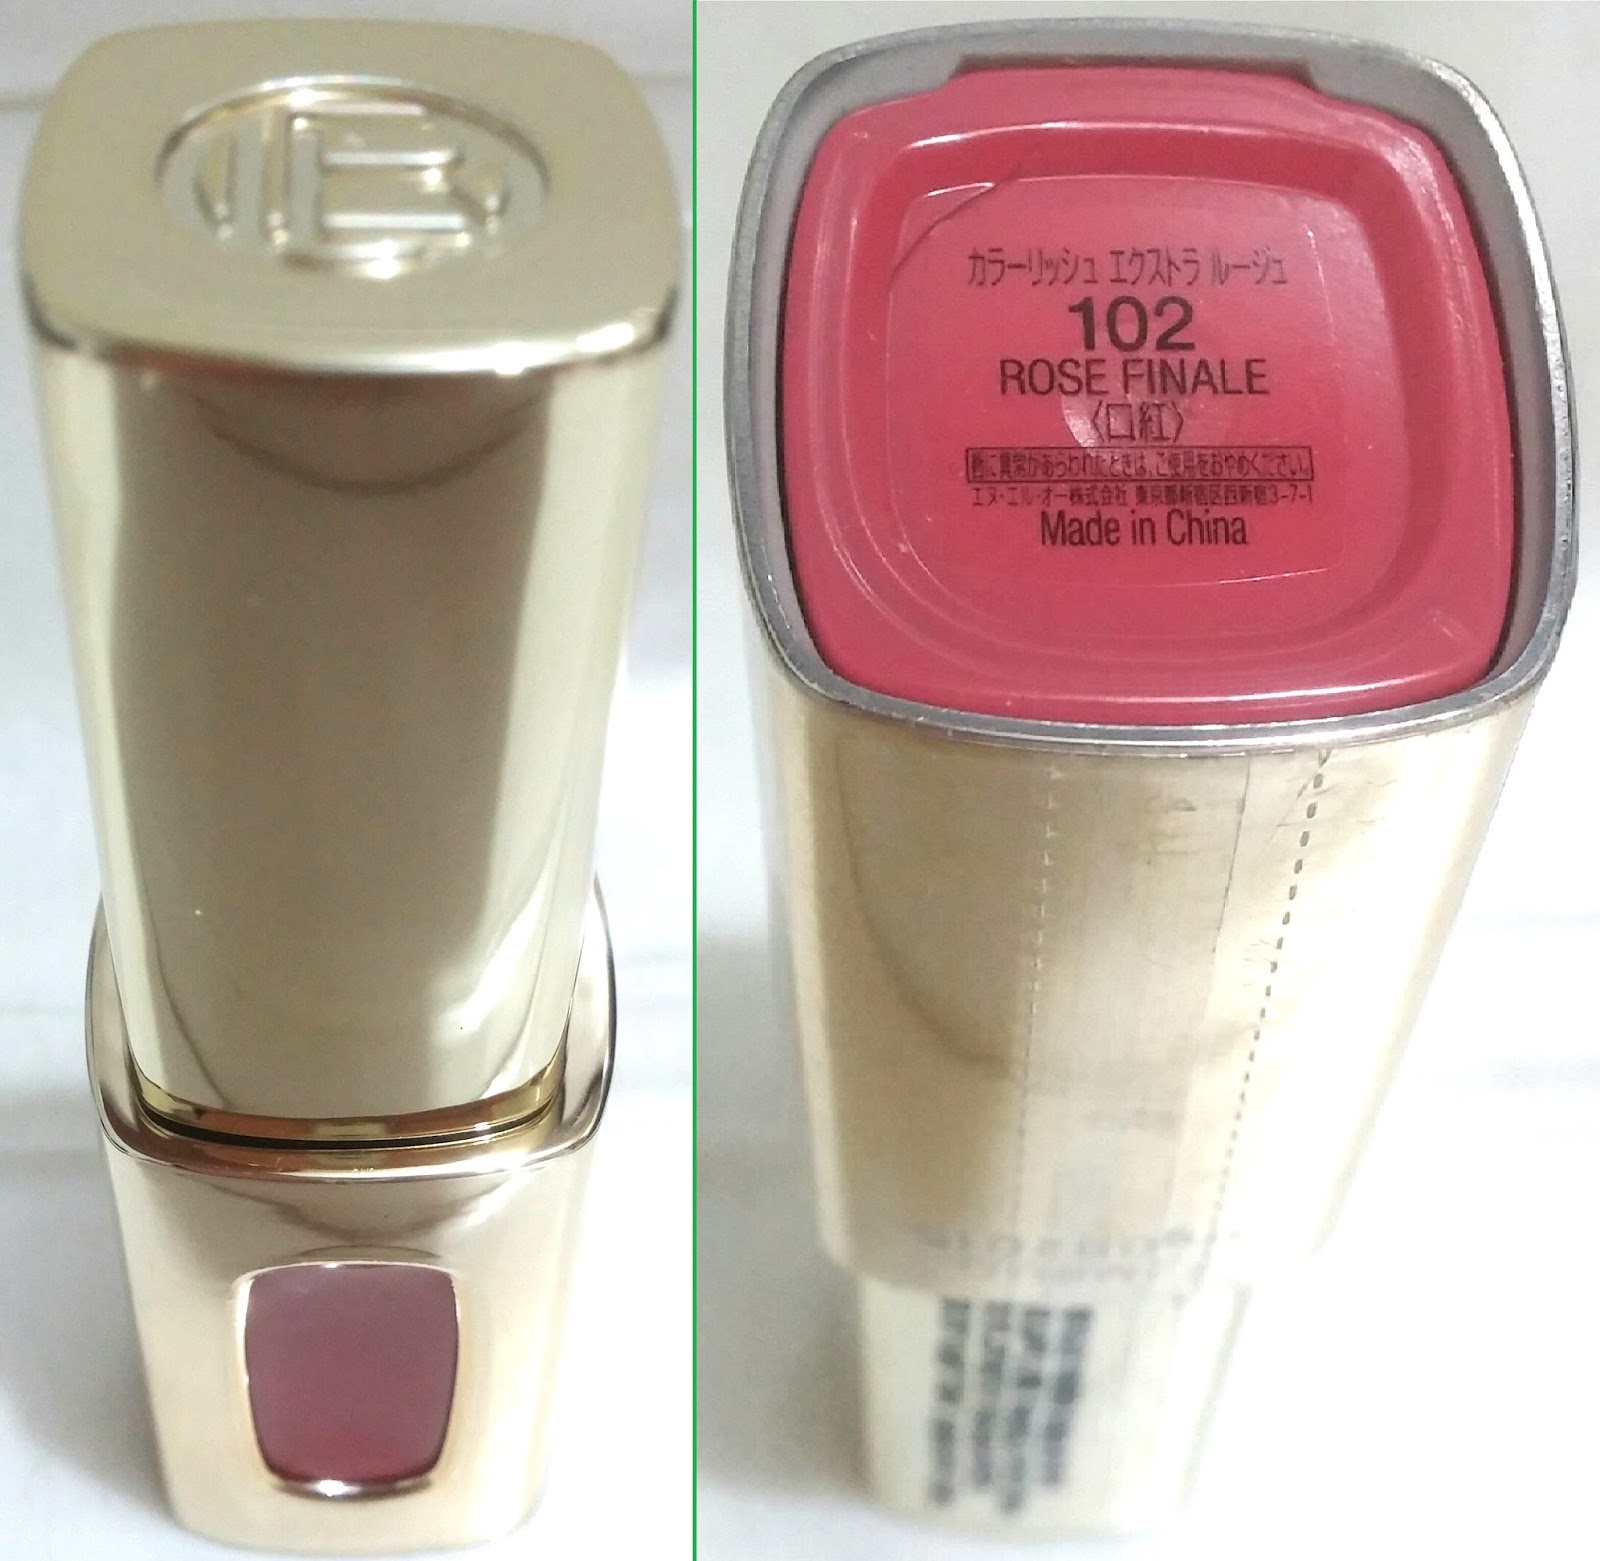 Loreal color caresse by color rich lipstick - While Traditional Lipsticks Use Waxes That Can Dull Colour Oils Infuse With Colour Pigments To Reveal Their Full Richness And Reflect Light For